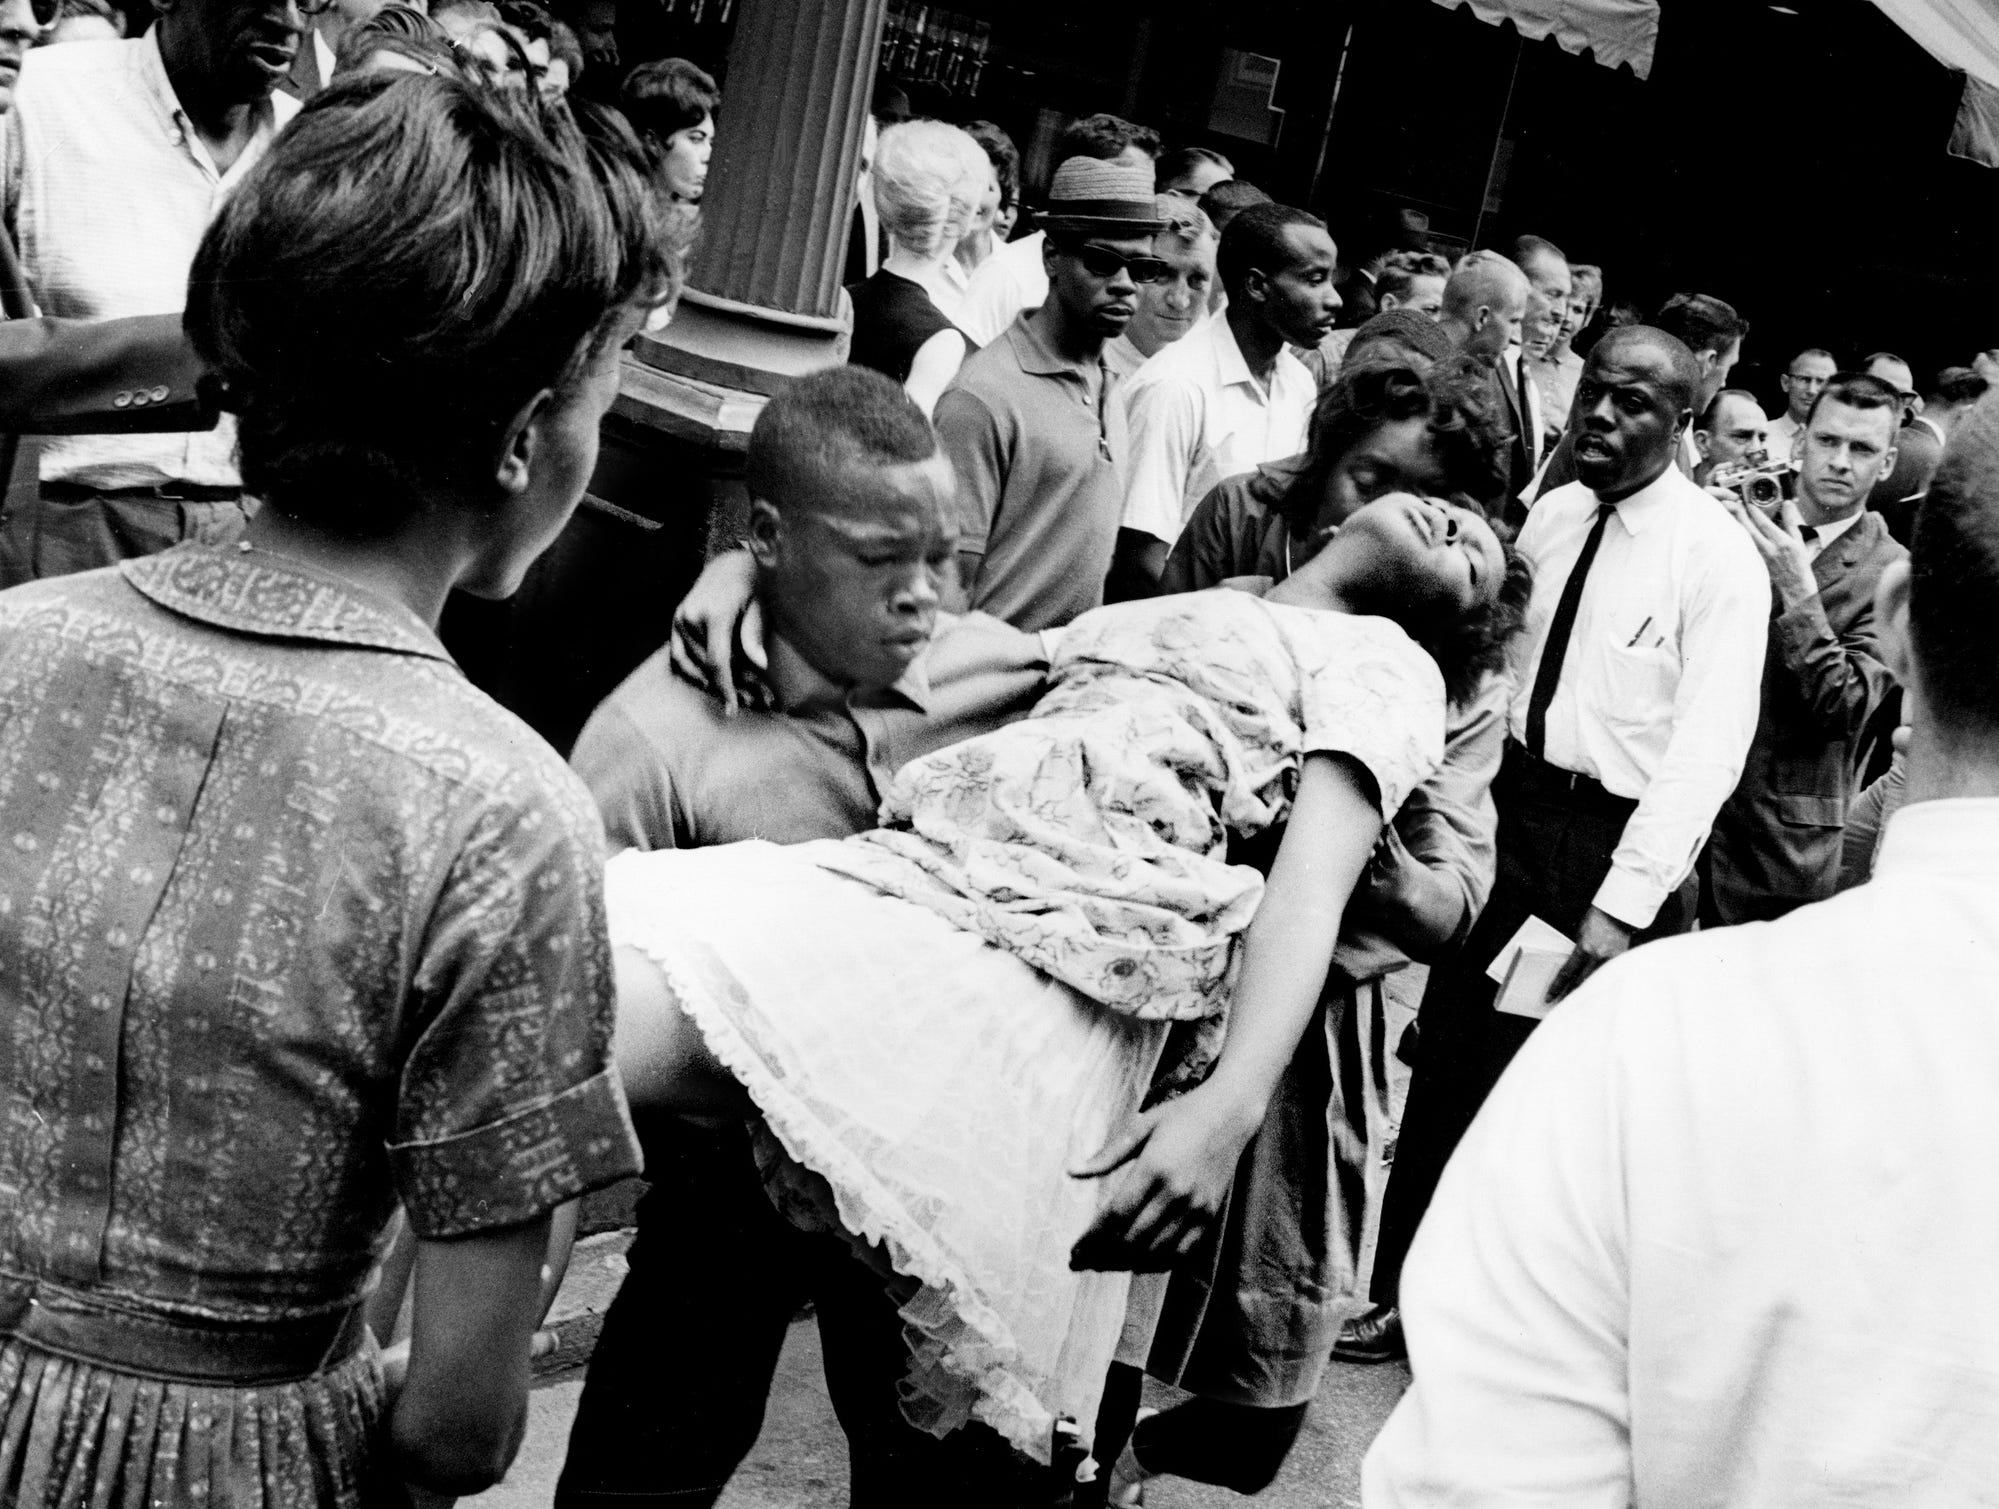 A black youth picks up Ewingella Bigham, 15, who was unconscious in the street, shortly after she was injured during a near-riot between white youths and black demonstrators May 10, 1963. Her sister, left, said the girl was struck with a patrolman's billy stick. She was taken to Hubbard Hospital.